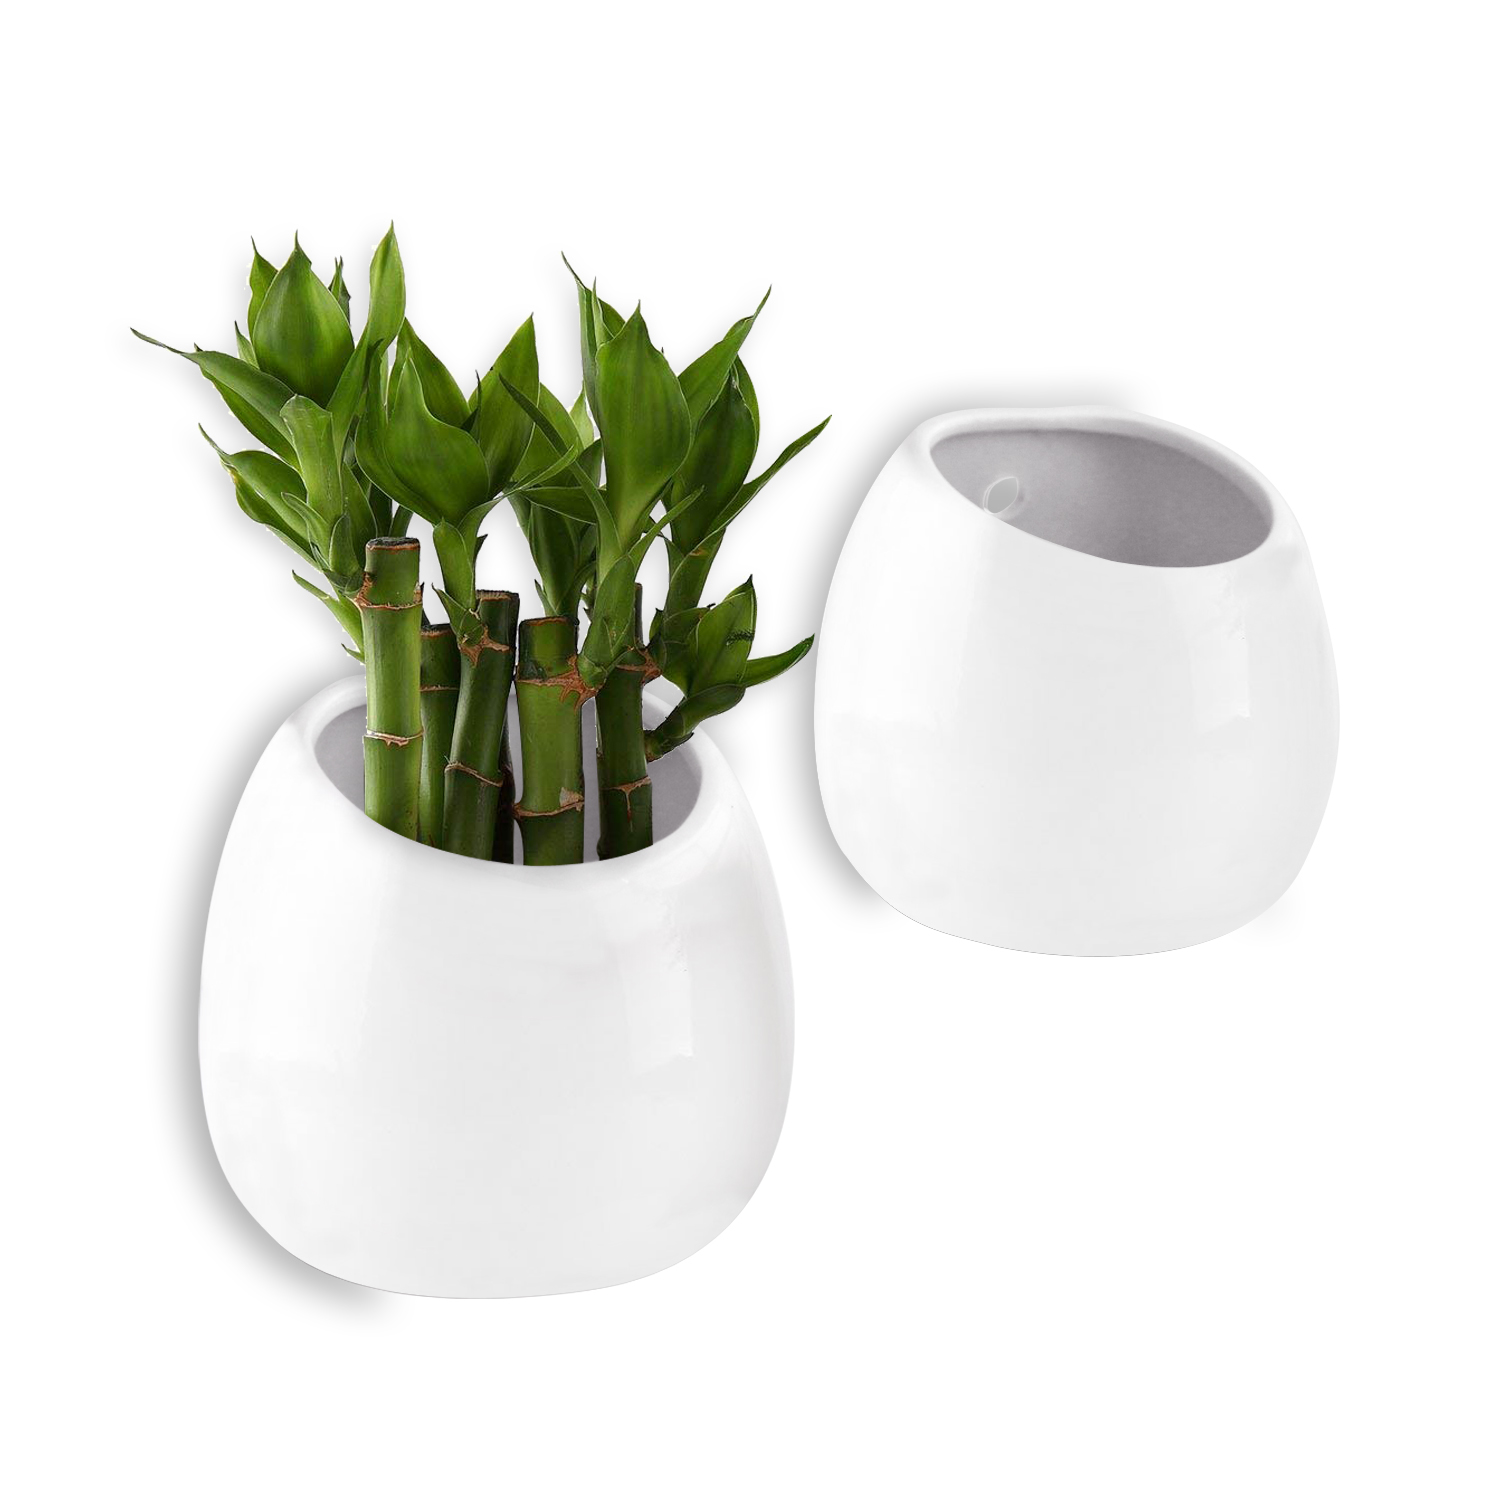 2x White 3 9 Quot Wall Mounted Hanging Planter Ceramic